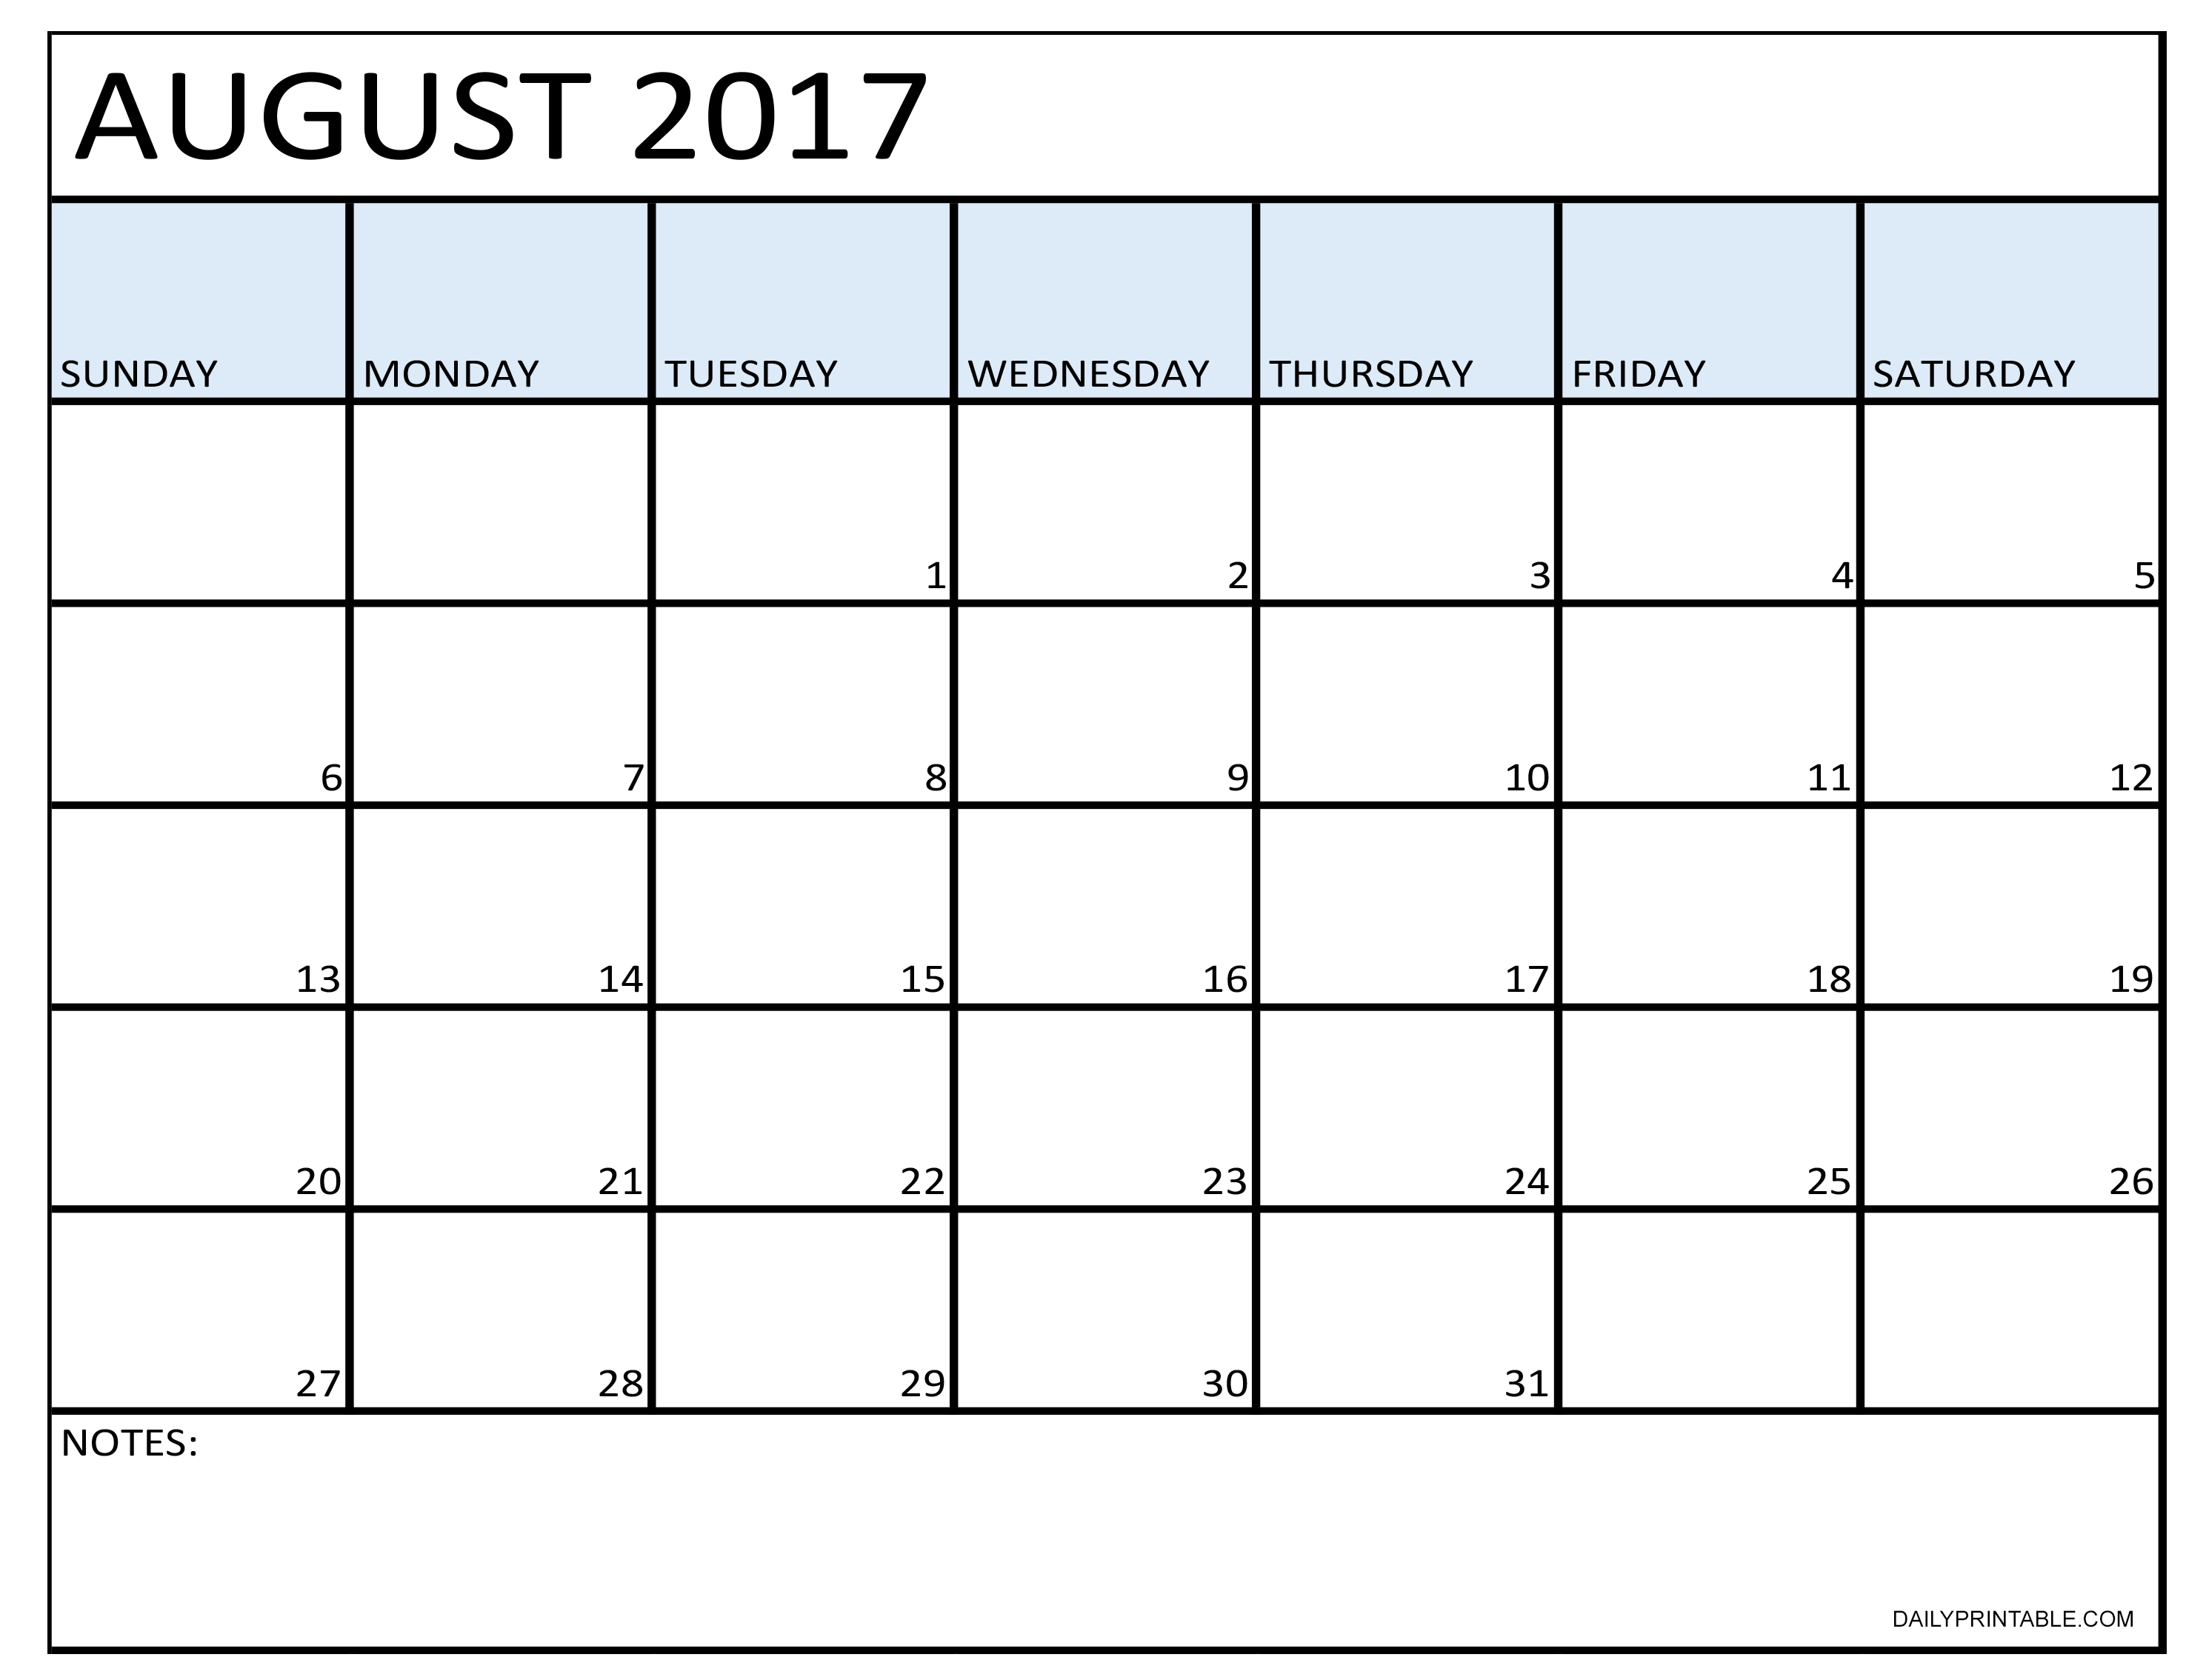 Pin By Dailyprintable On Printable August Calendar